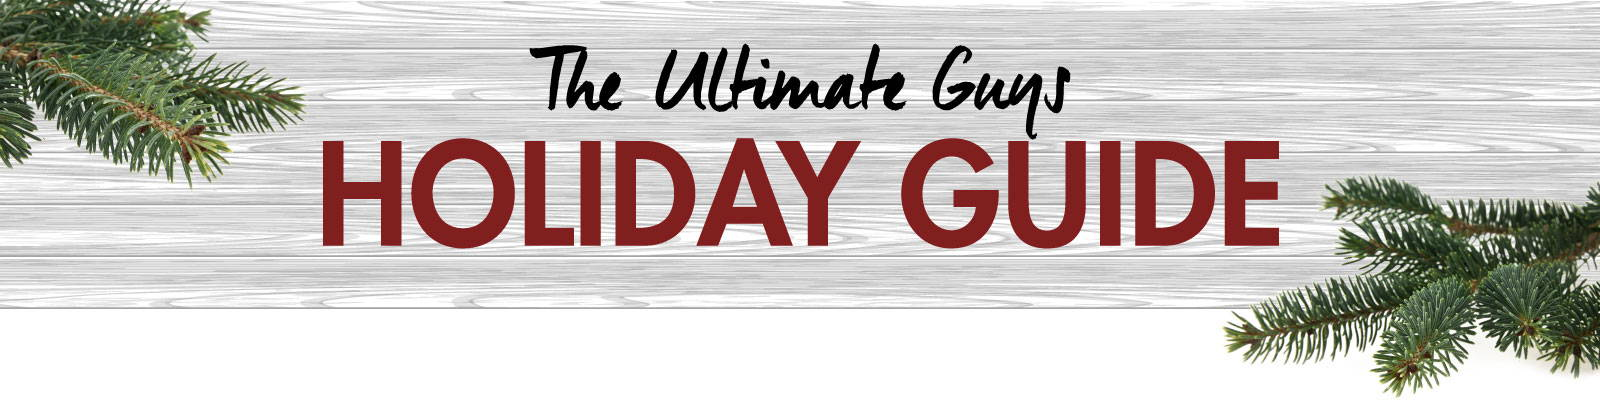 The Ultimate Guys Holiday Guide of Men's Underwear